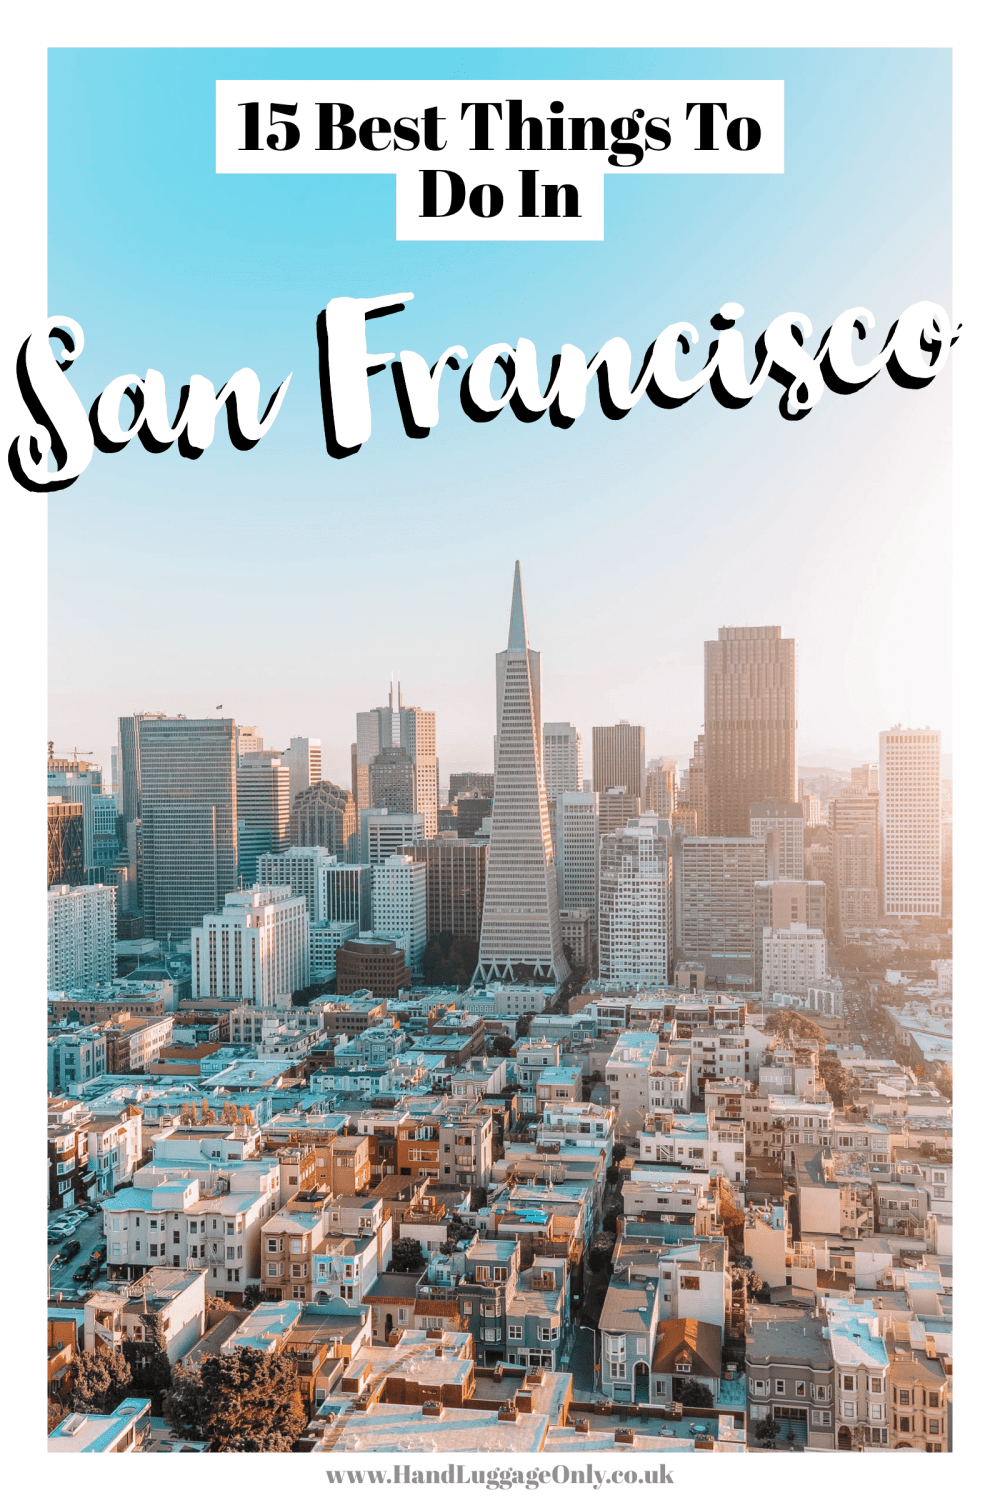 Best Things To Do In San Francisco (10)